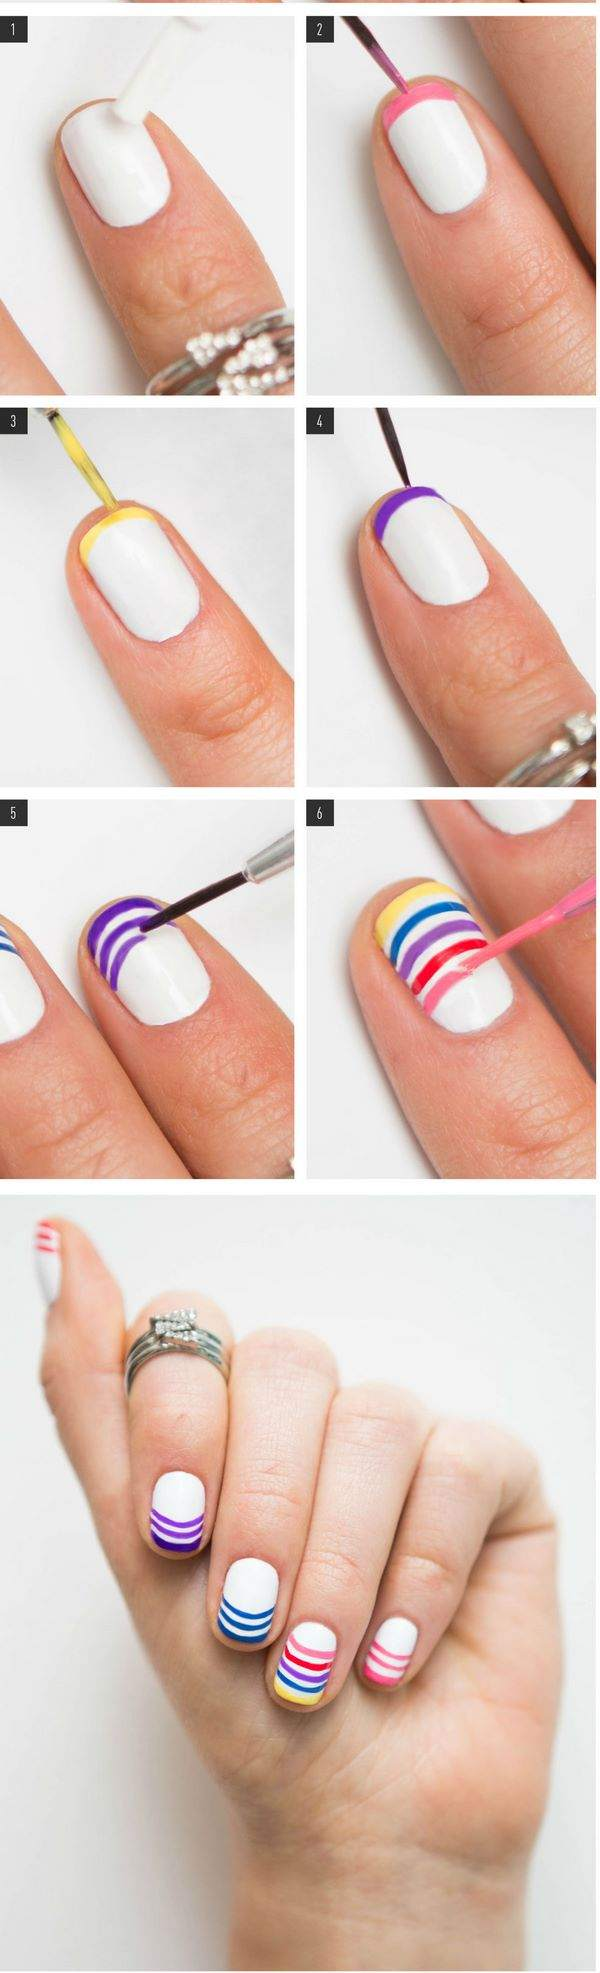 Tutorial zum Regenbogen-Nageldesign